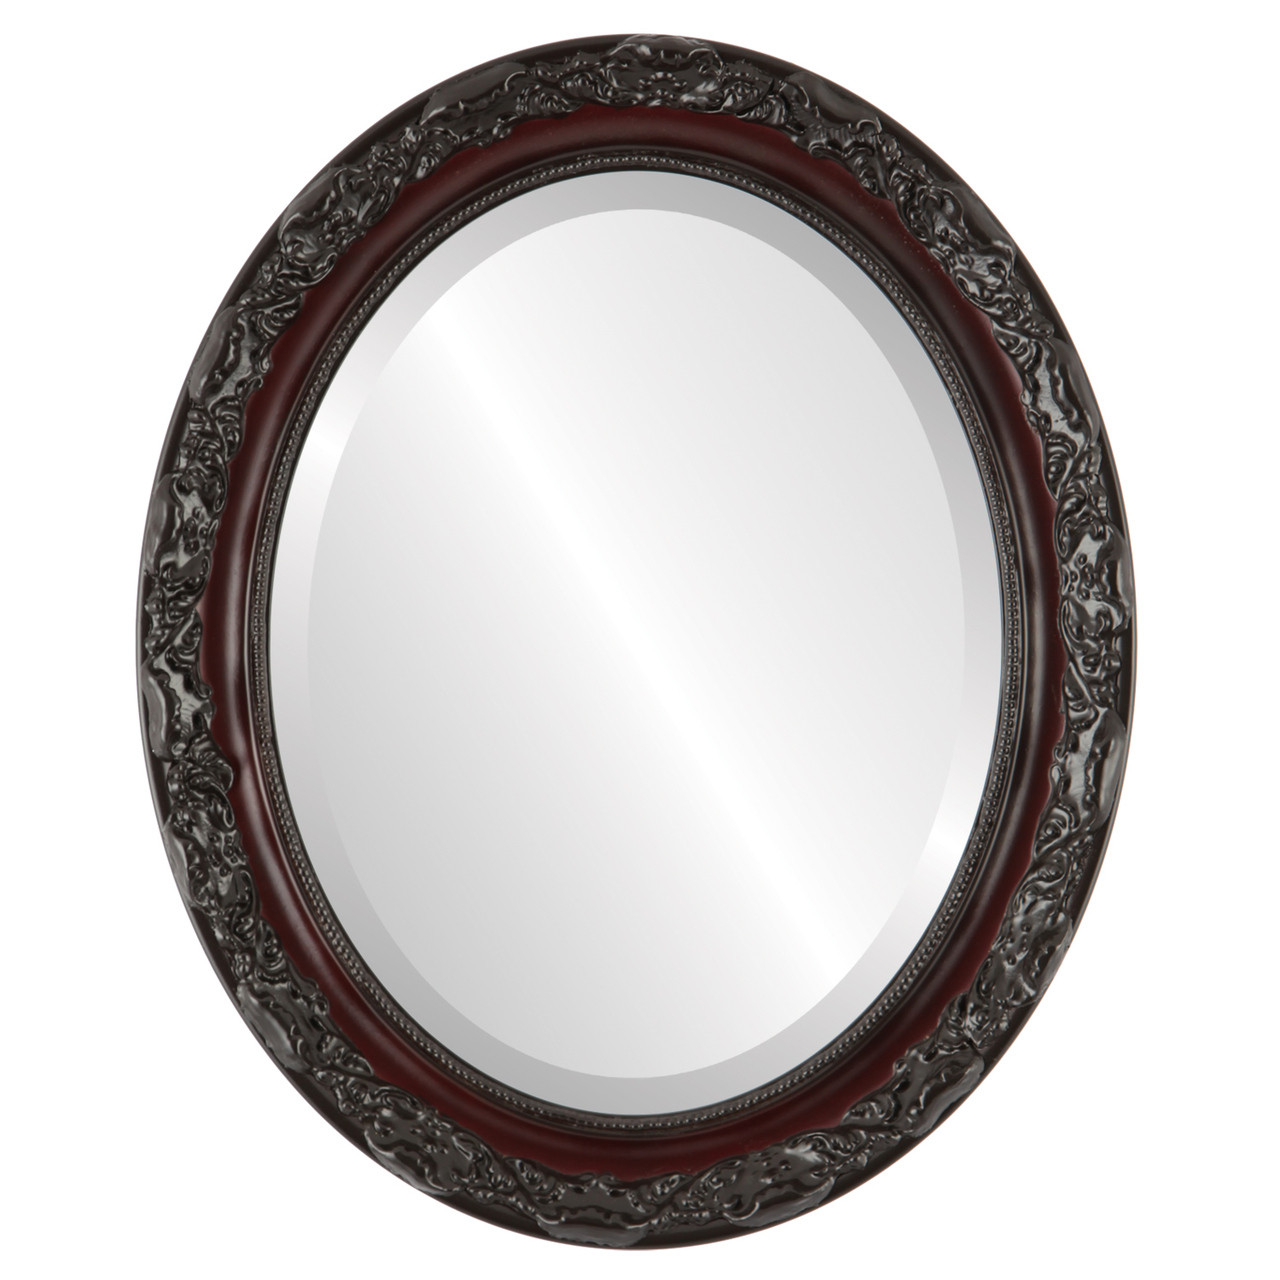 Cherry Oval Mirrors From 146 Rome Rosewood Free Shipping